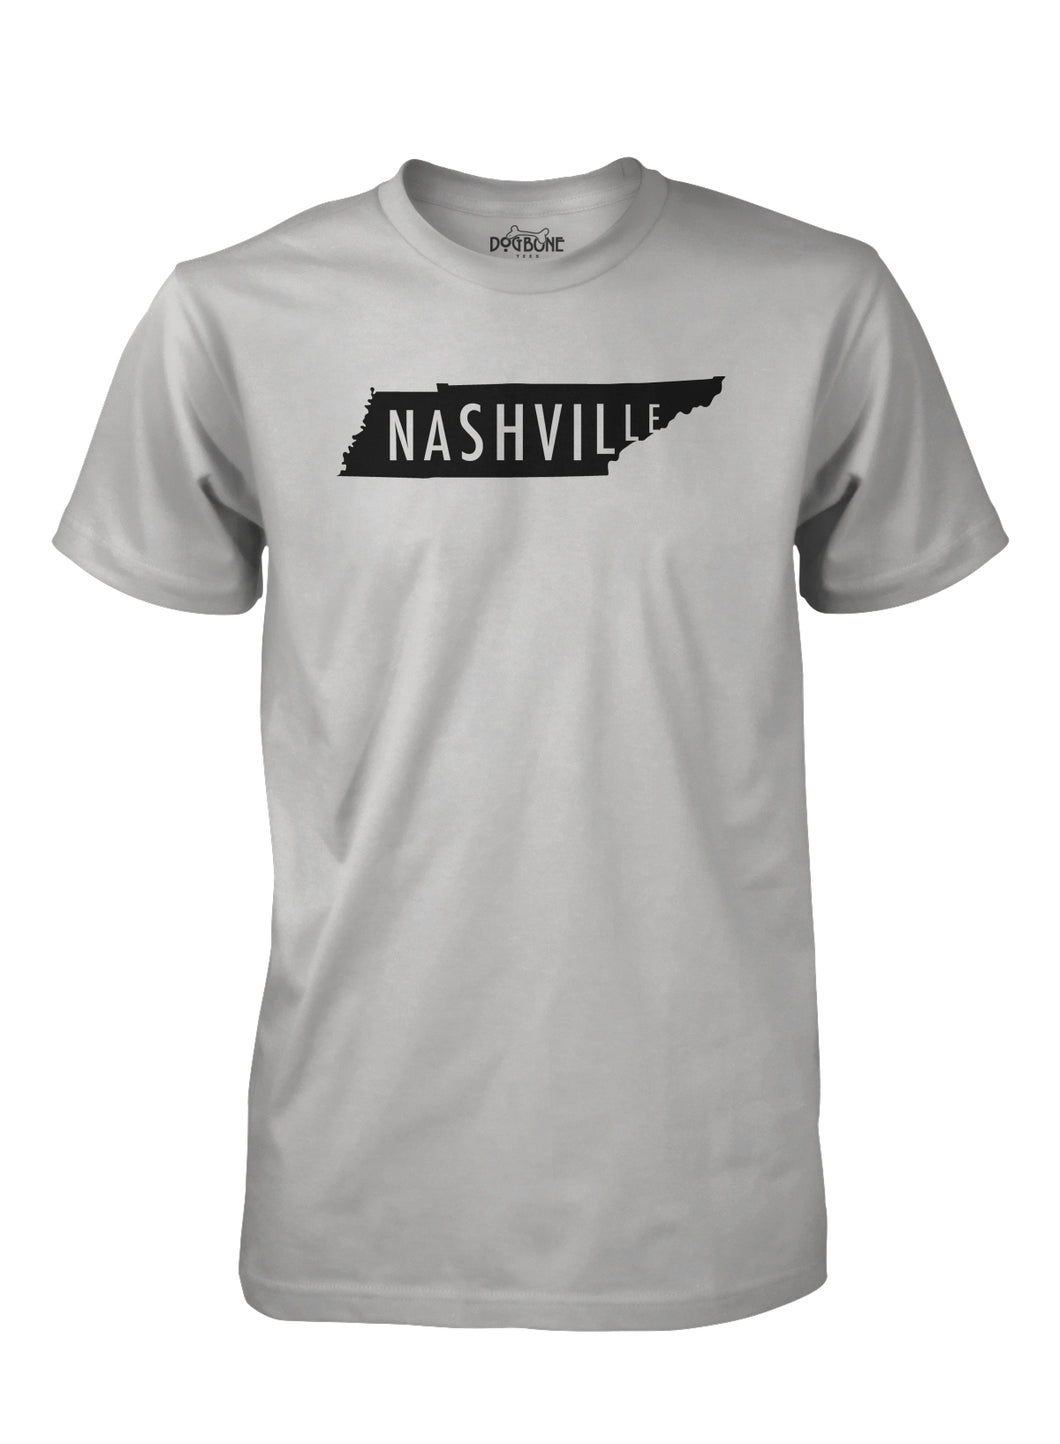 Nashville in LT Gray with Black print